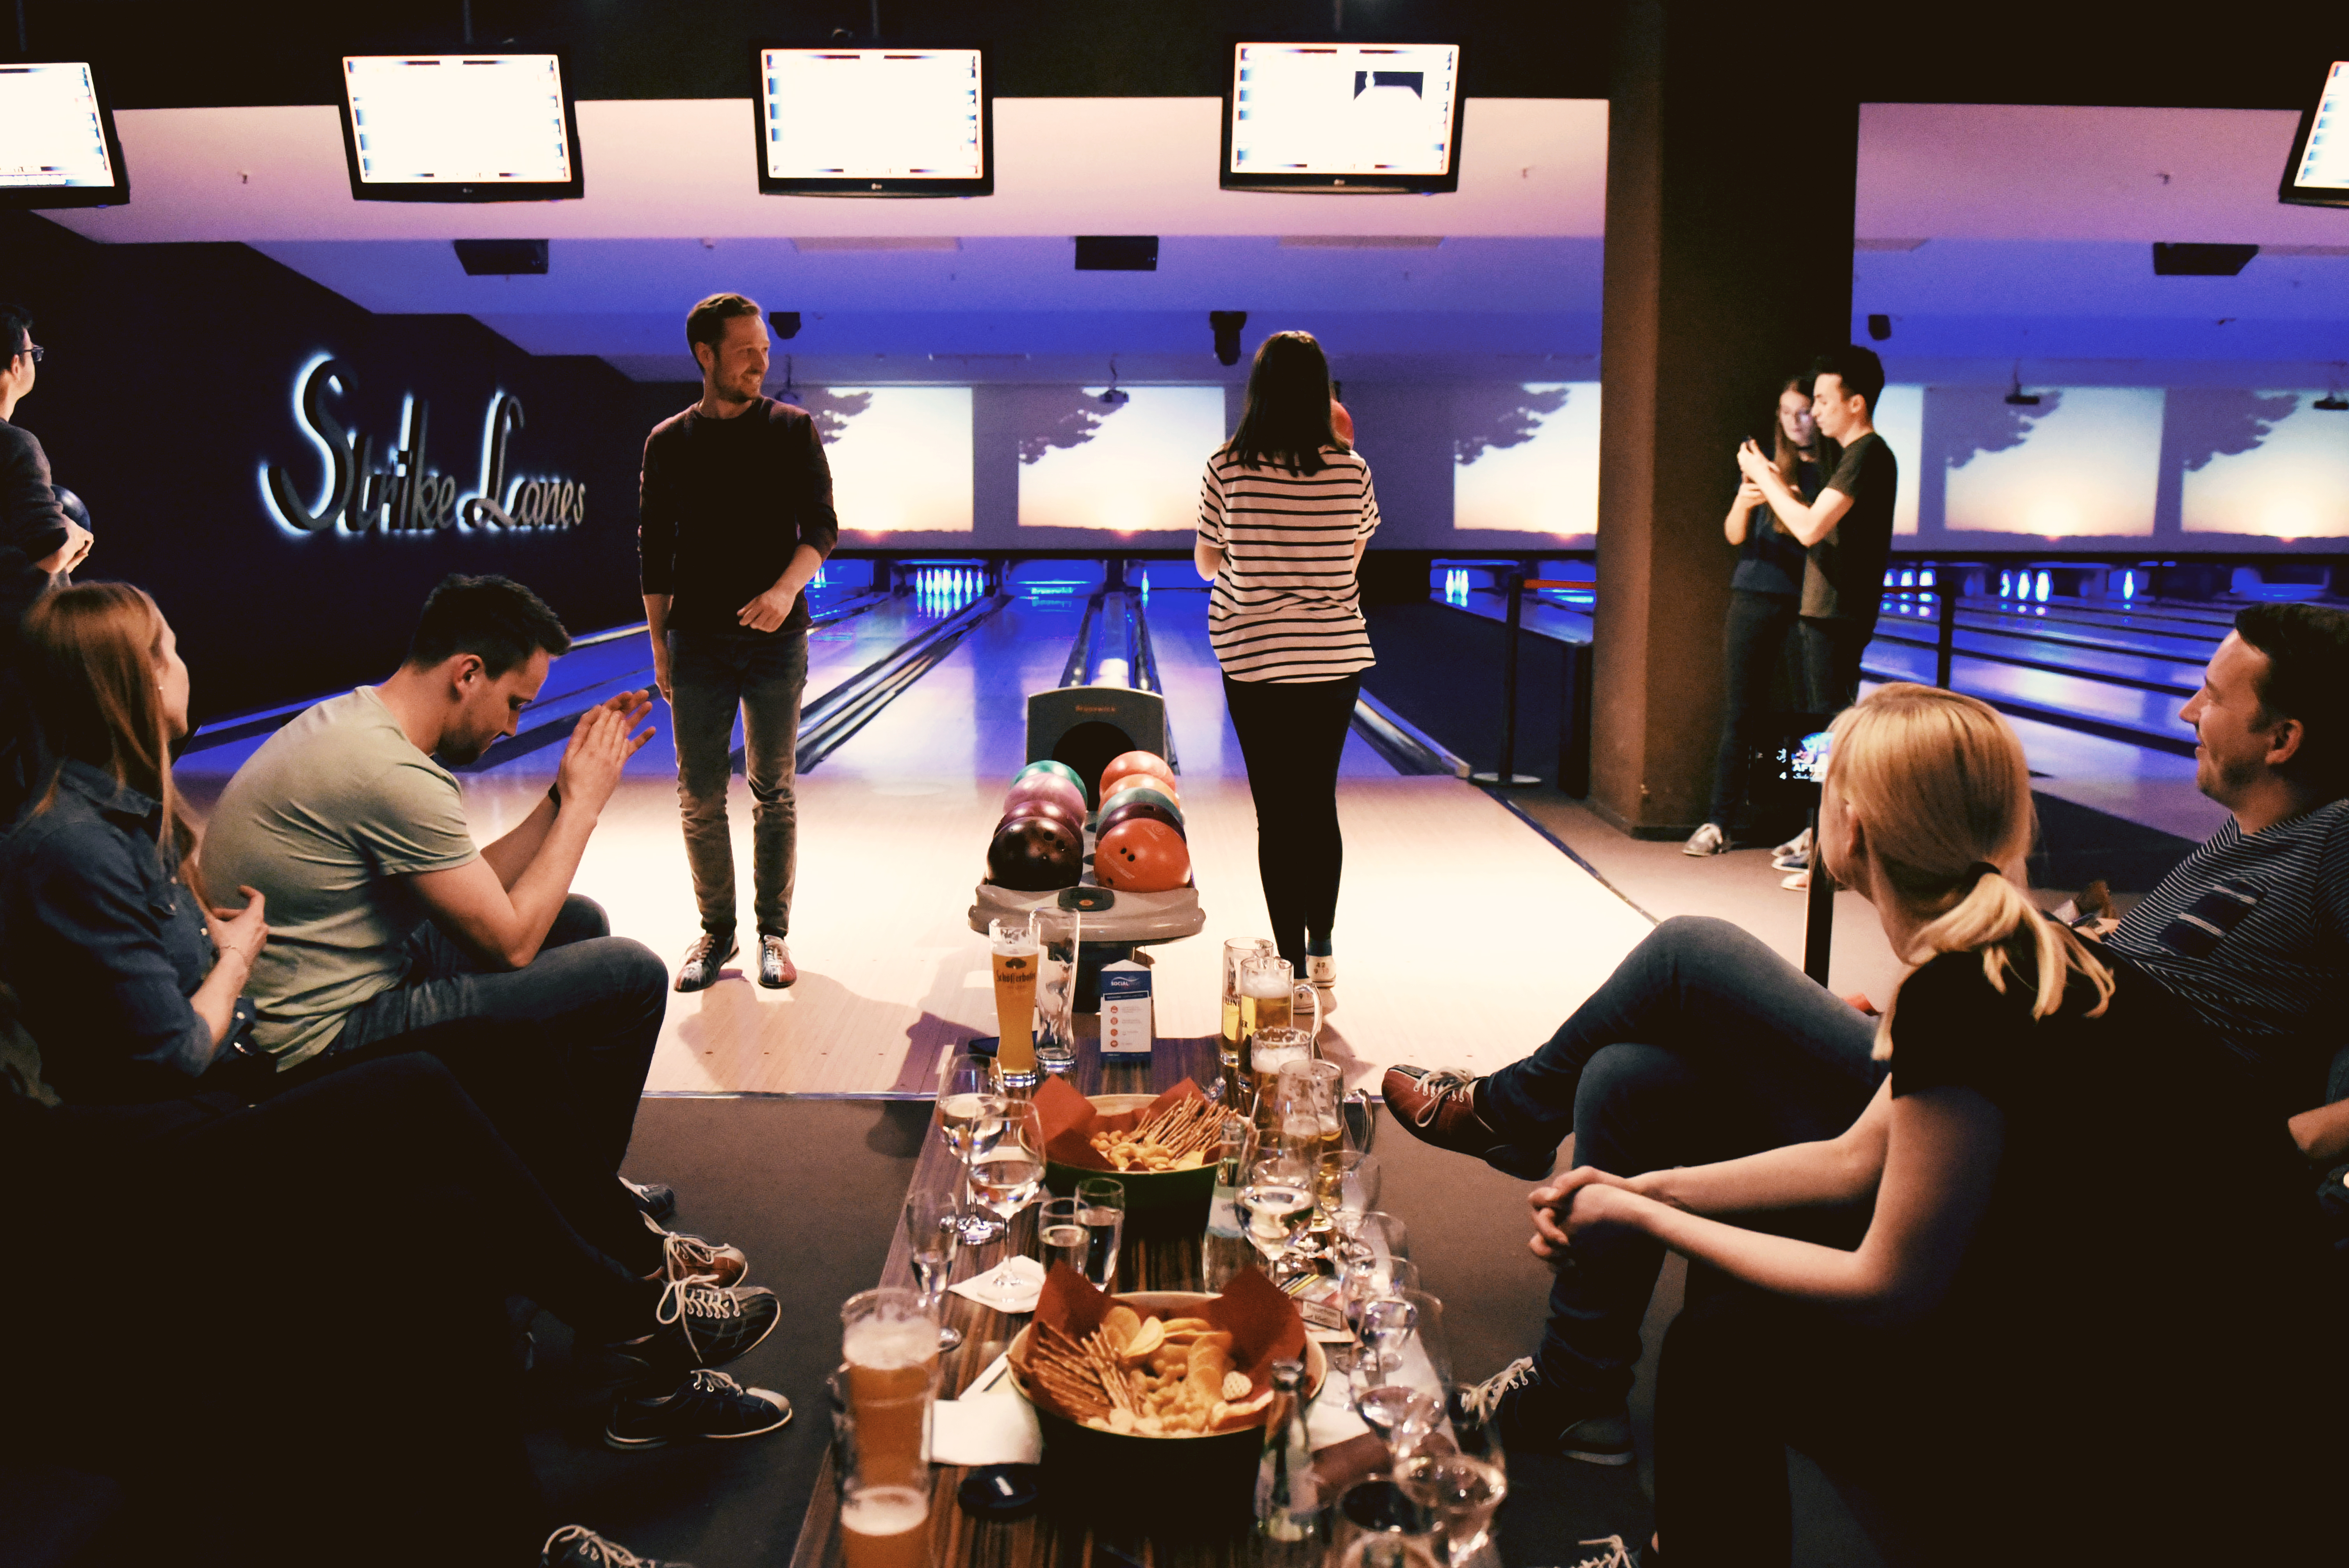 KW-Afterwork: Bowling